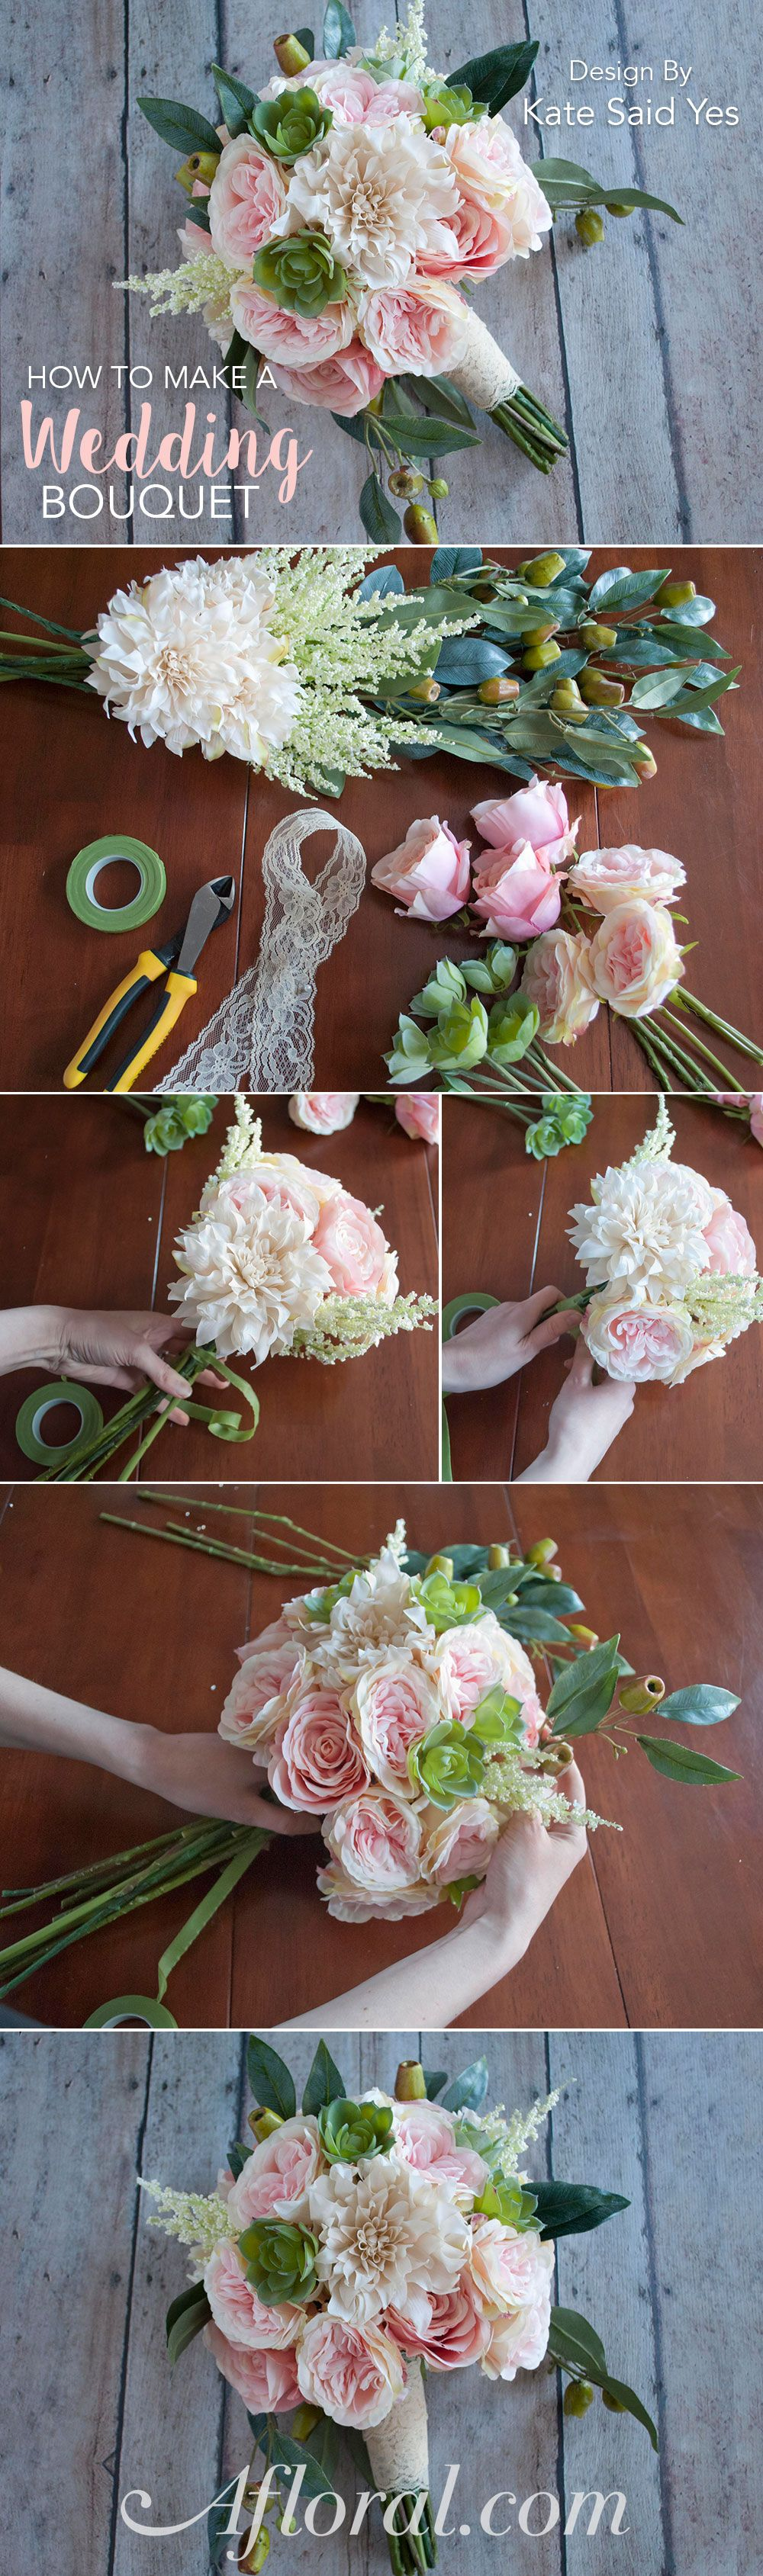 How to make a wedding bouquet silk flowers silk and flower how to make a wedding bouquet with silk flowers from httpafloral fauxflowers design by kate said yes izmirmasajfo